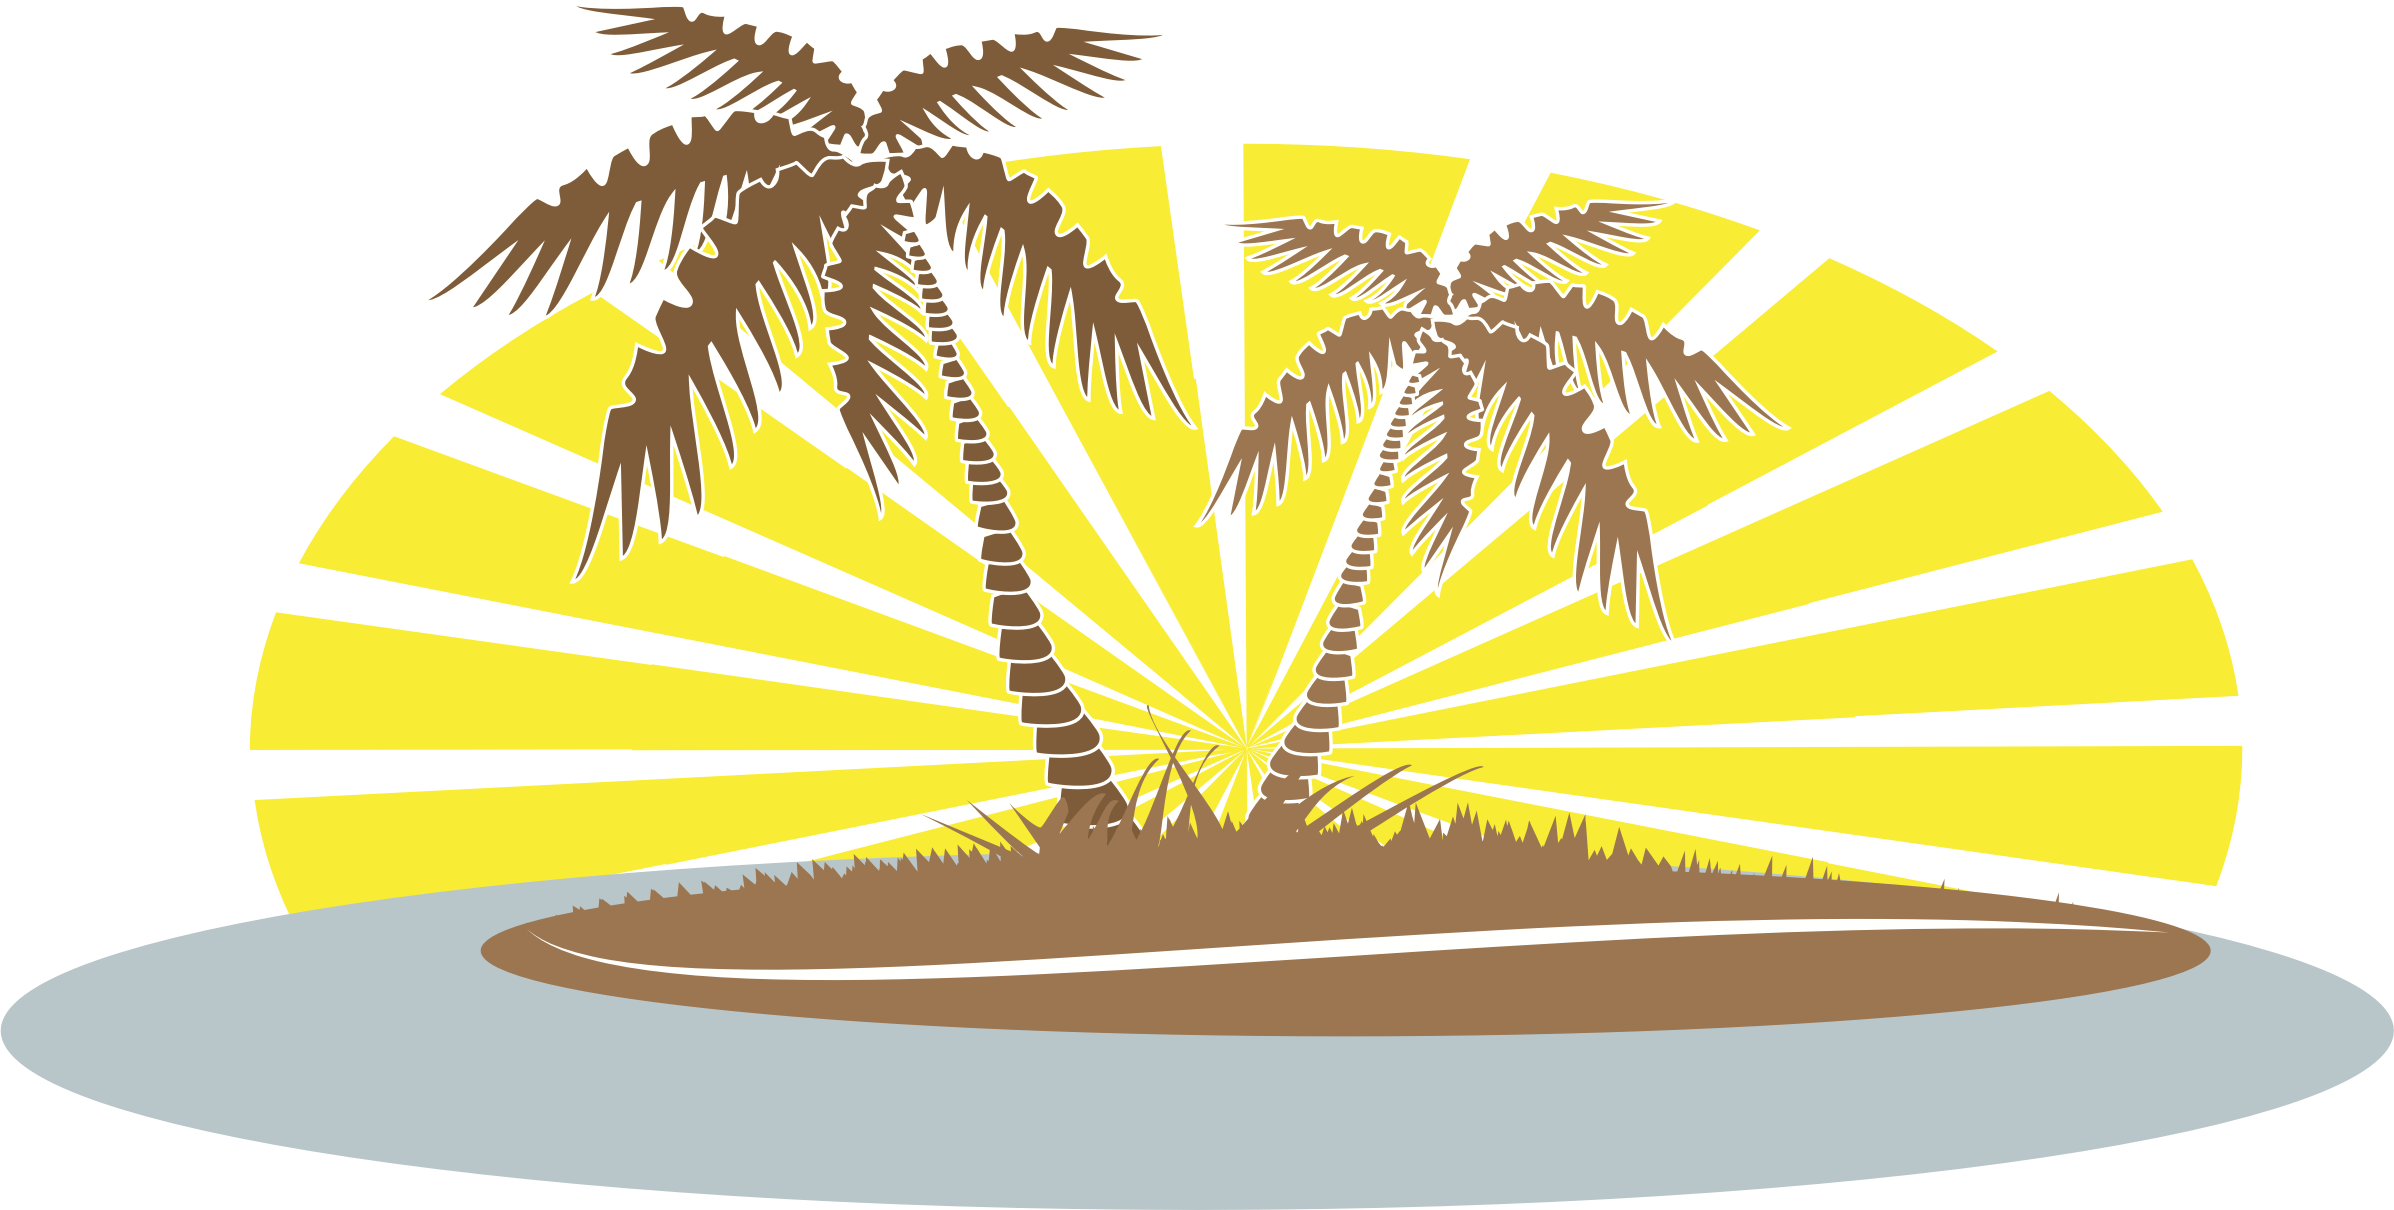 Palm tree on beach clipart graphic black and white stock Clipart - Palm Trees graphic black and white stock